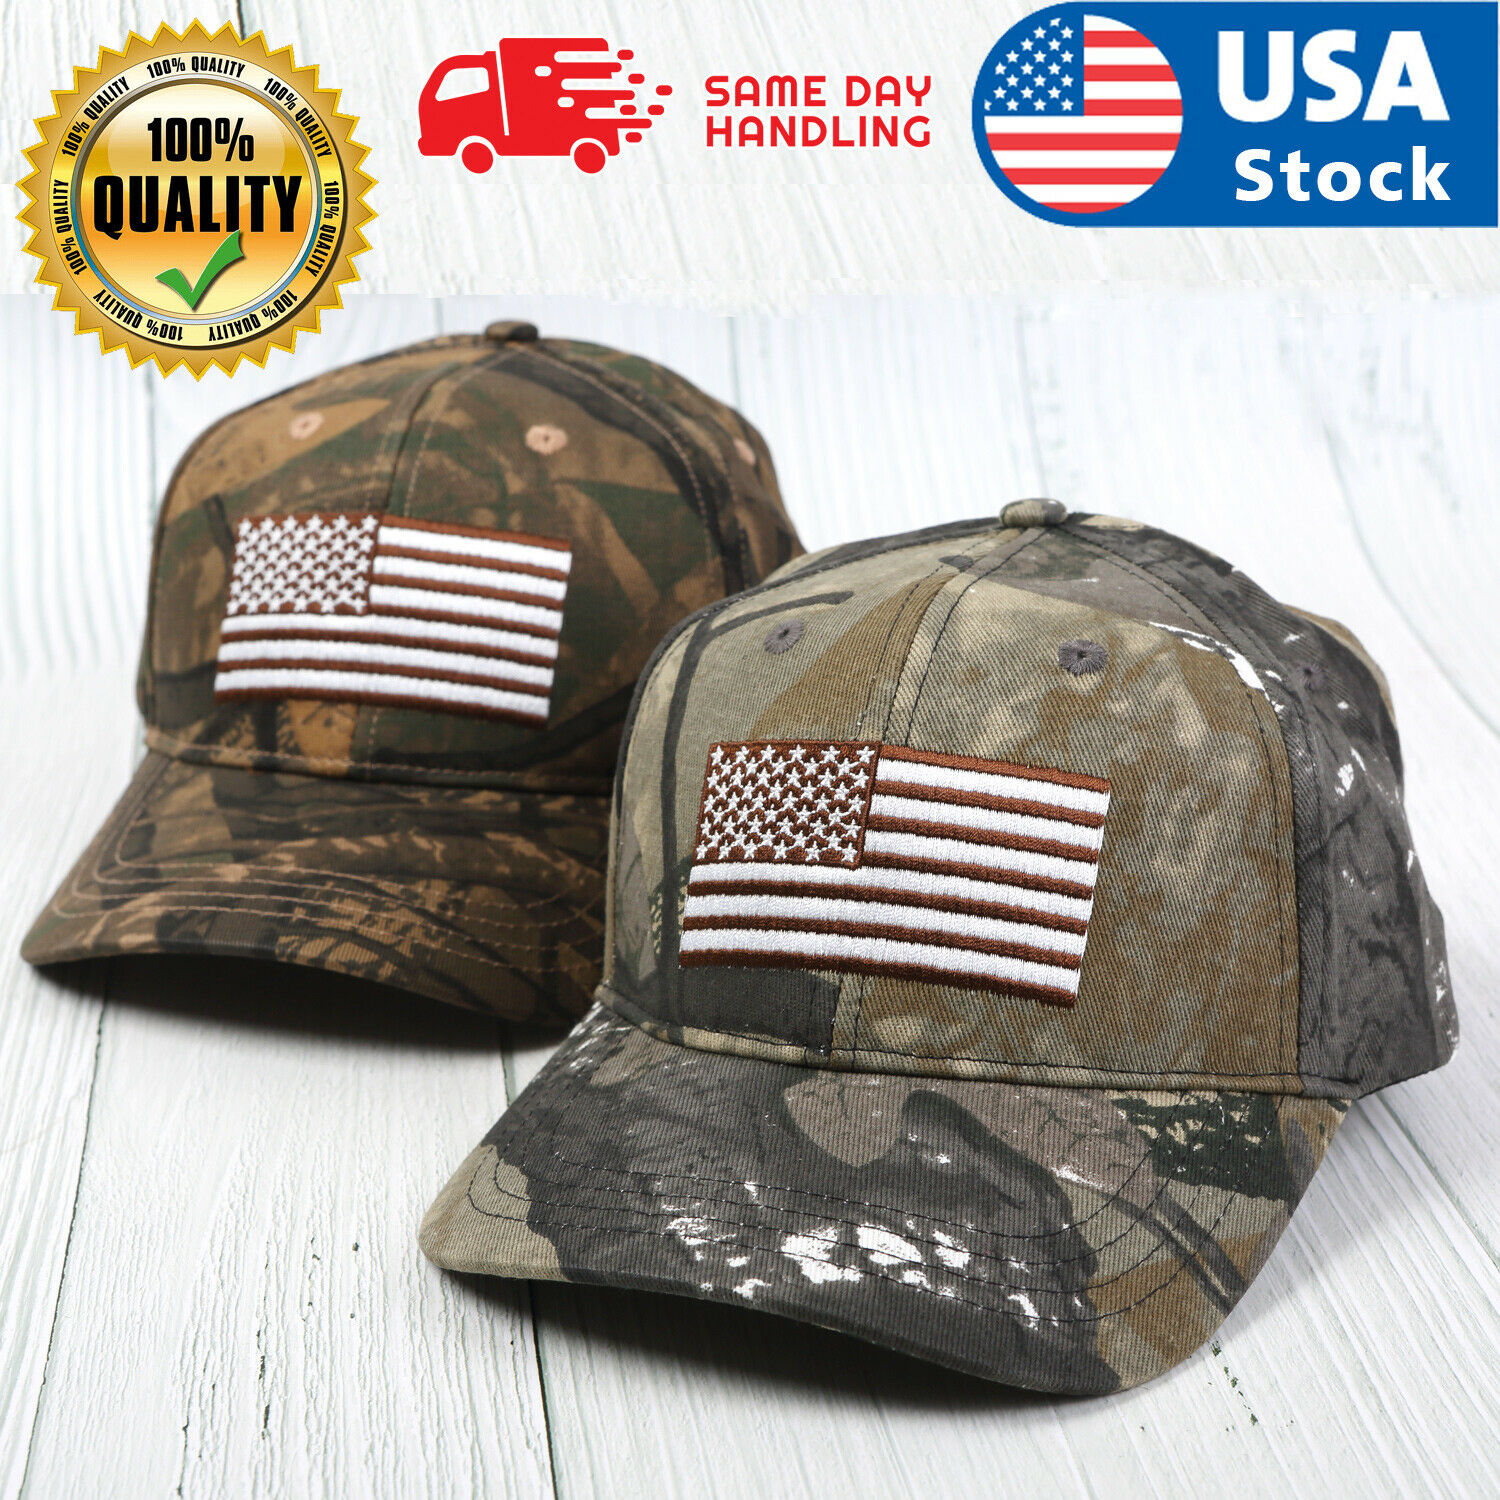 Baseball Cap Trucker Army Hat USA American Flag Tactical Military Adjustable Men Clothing, Shoes & Accessories